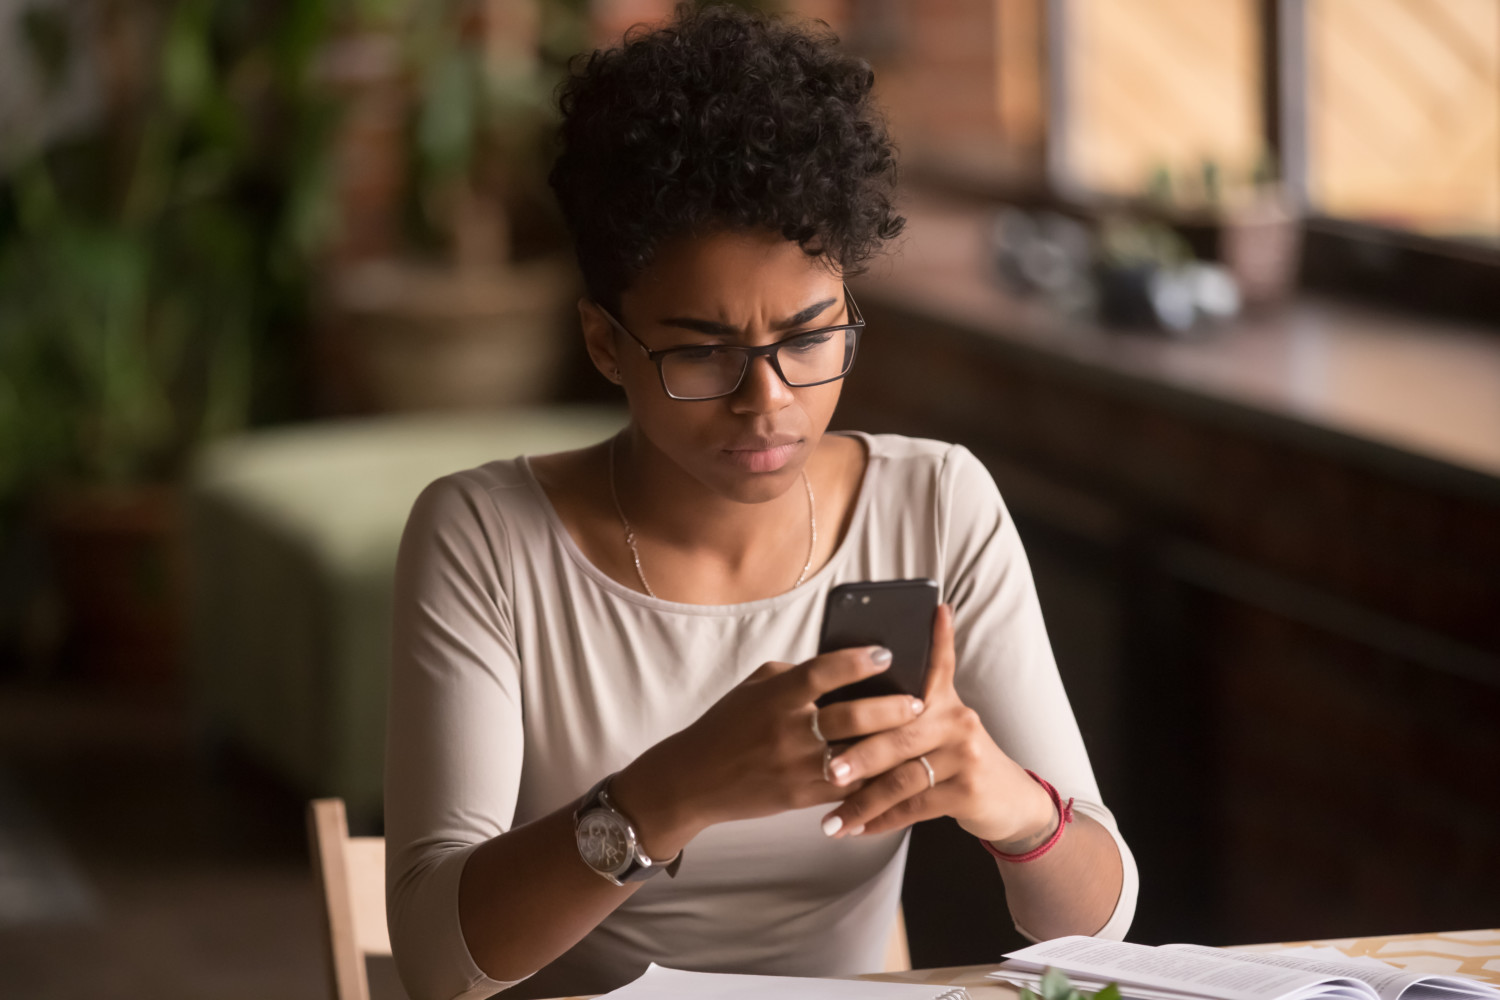 Confused woman looks at cell phone